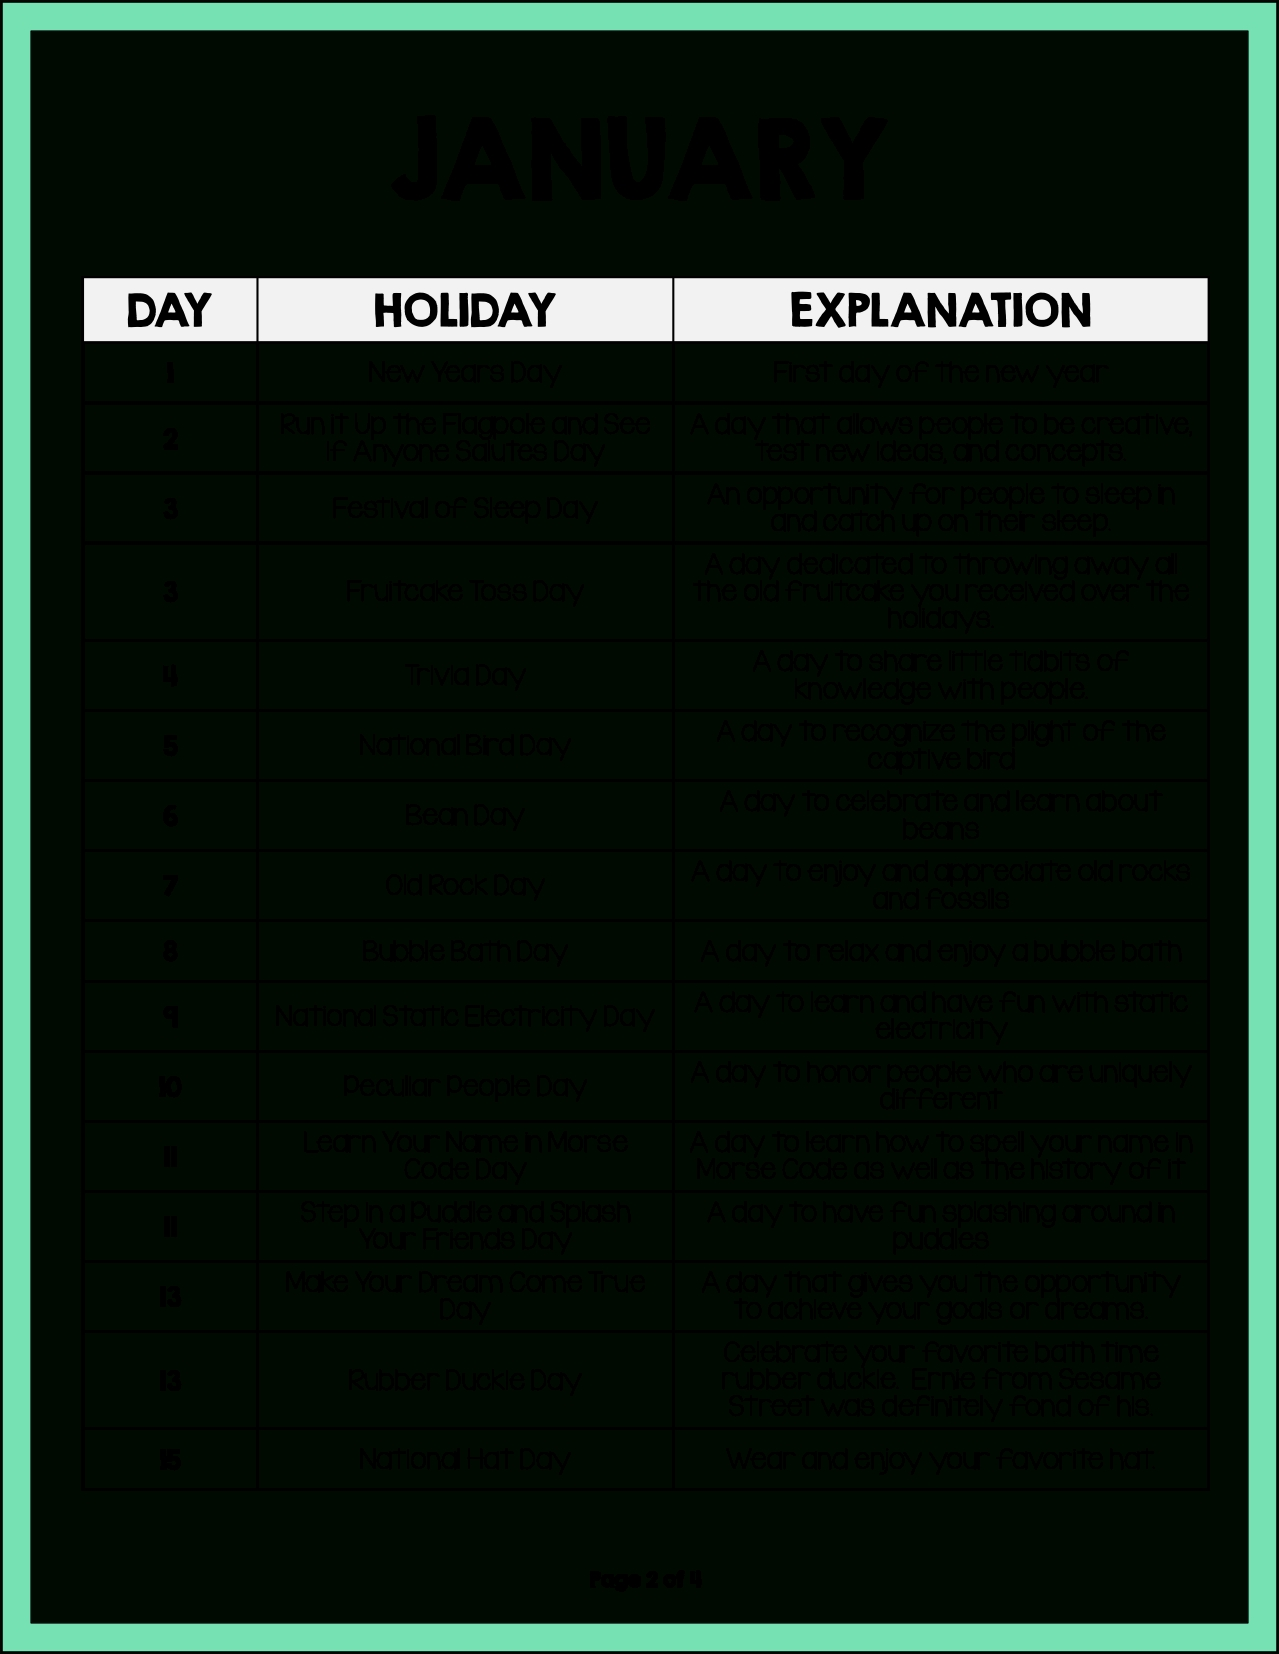 Fun Holidays To Celebrate In January 2014. | Holiday-List By Month Of All Holidays